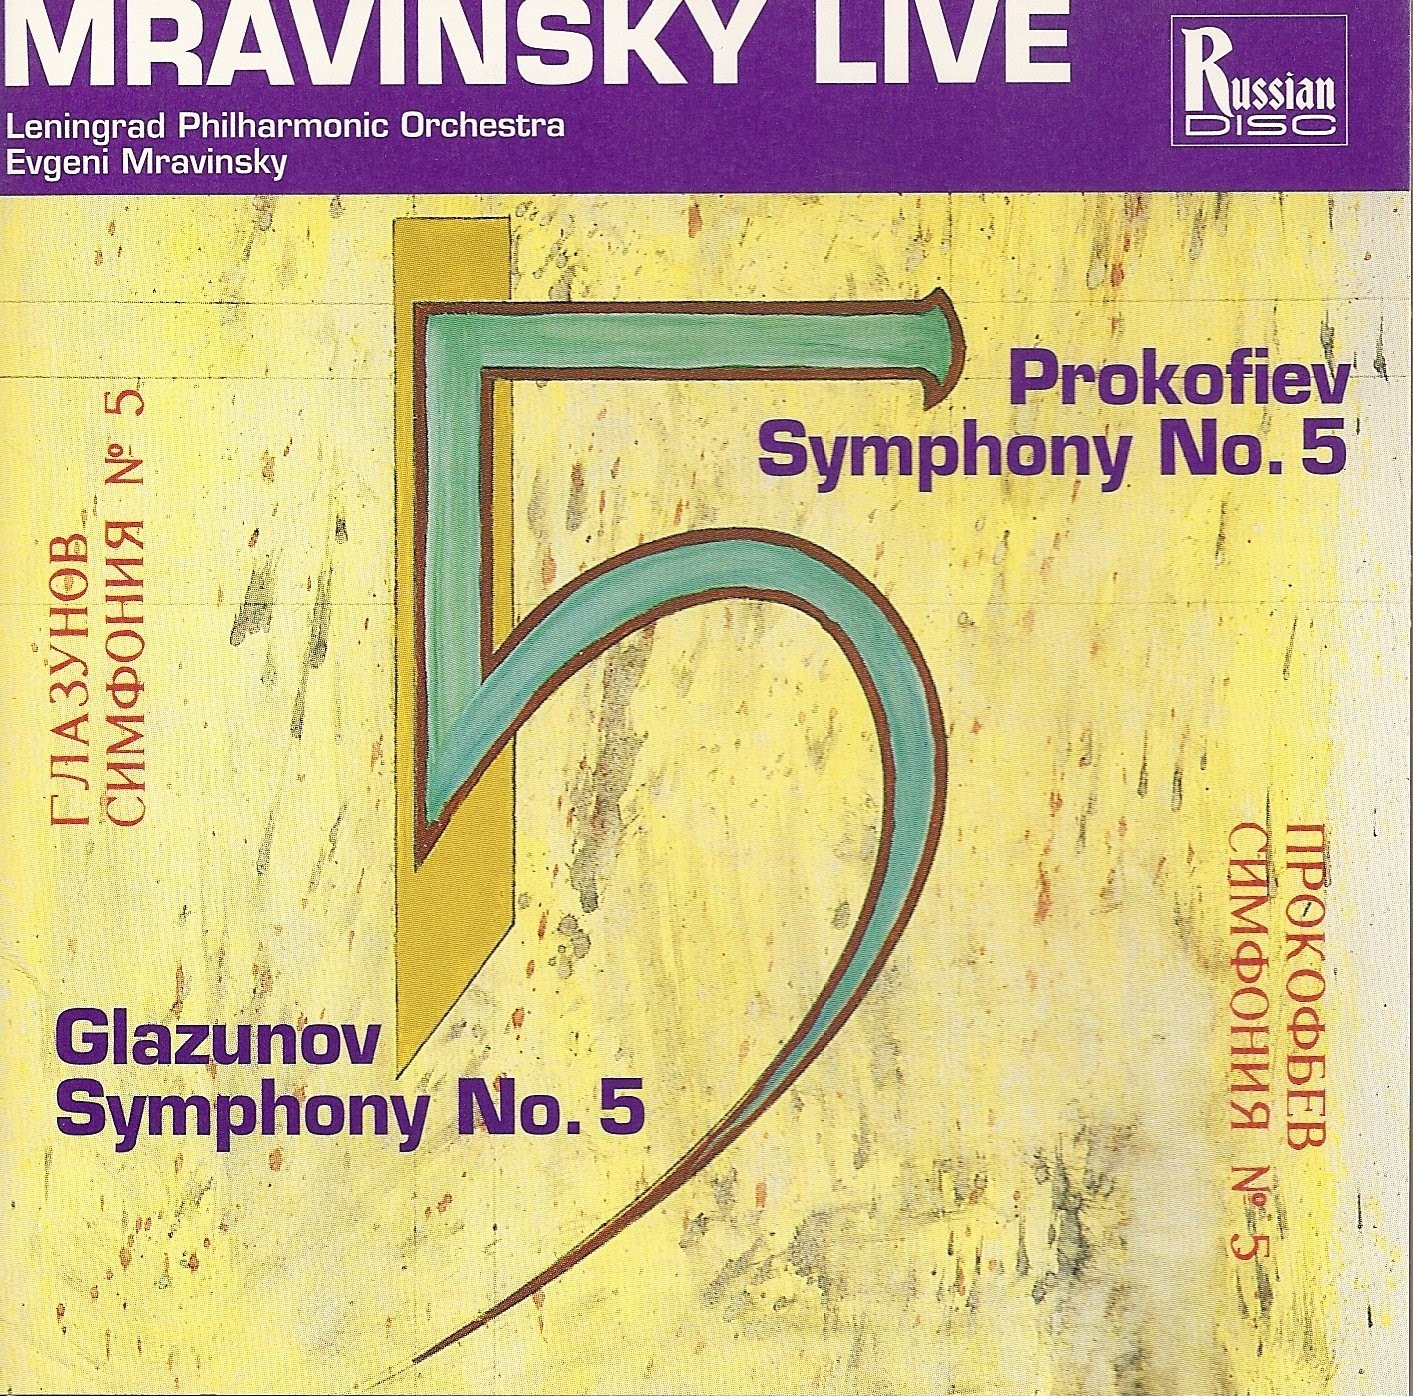 symphony no 5 The symphony no 5 in c minor of ludwig van beethoven, op 67, was written between 1804-1808 it is one of the best-known compositions in classical music,.